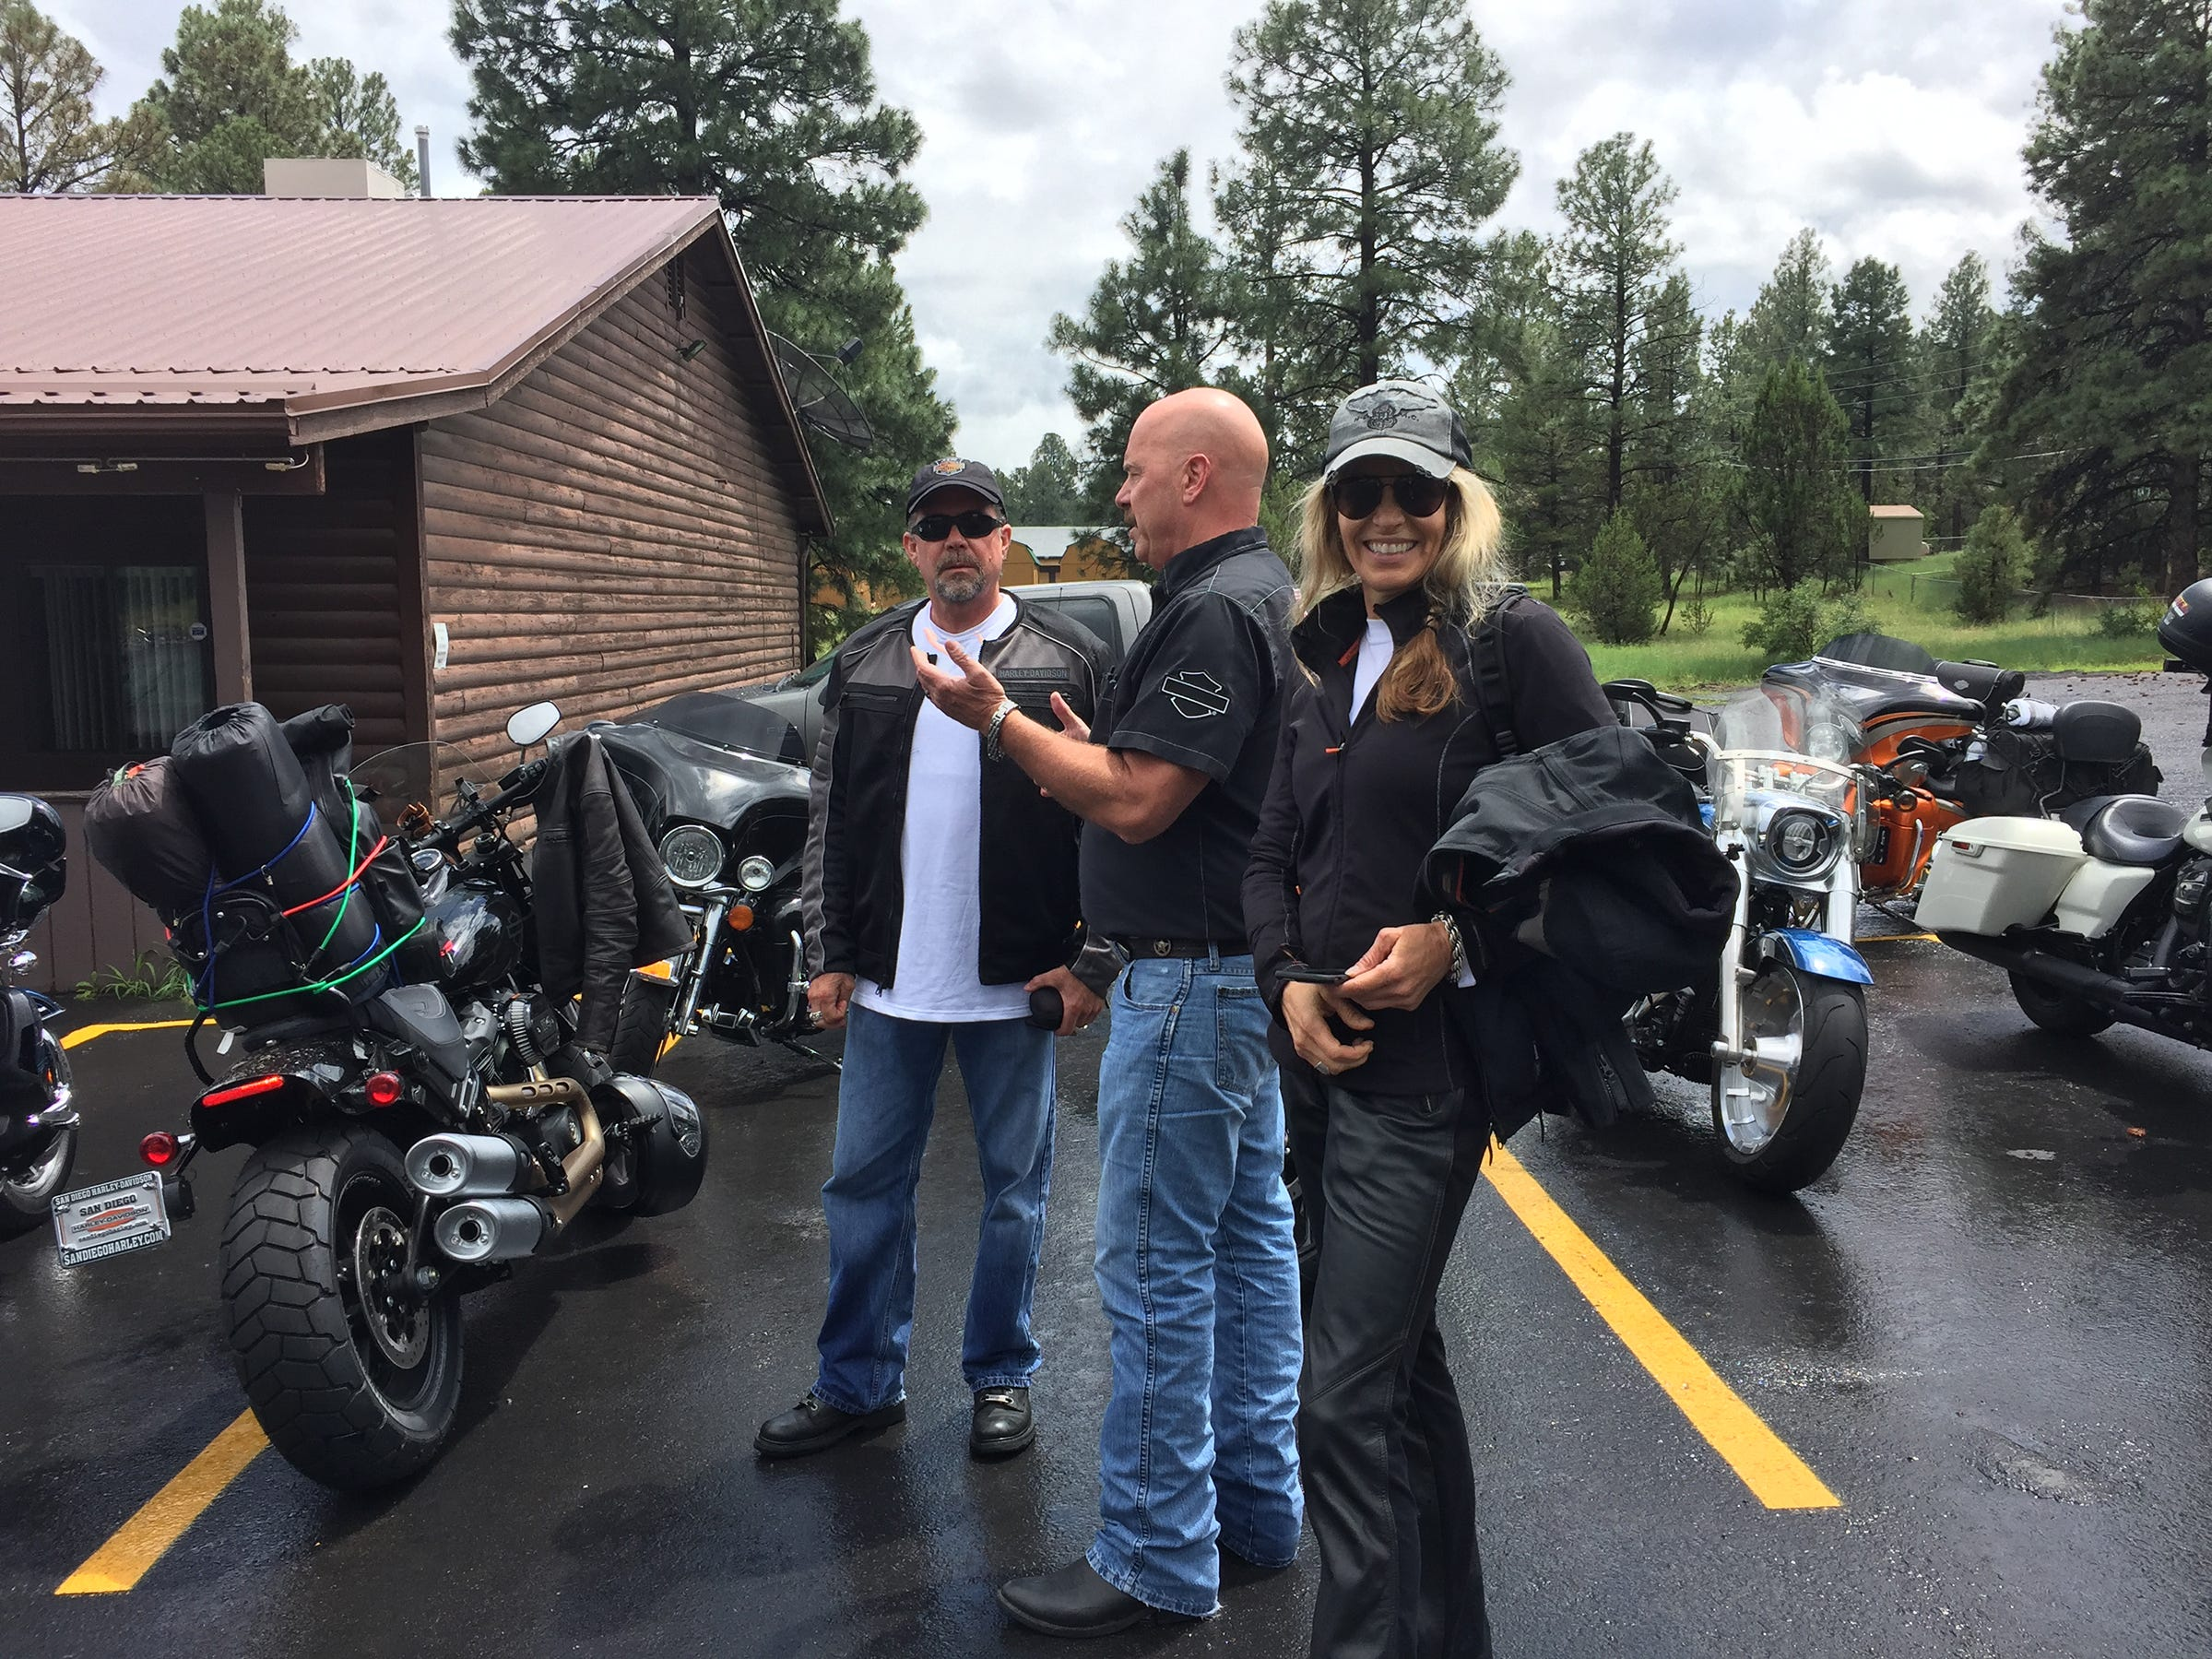 Bill Davidson, Karen Davidson and Glenn Dusz talk outside the Red Onion Lounge in Overgaard, Arizona, where riders stopped for lunch. Glenn recommended the Green Chile Burger.